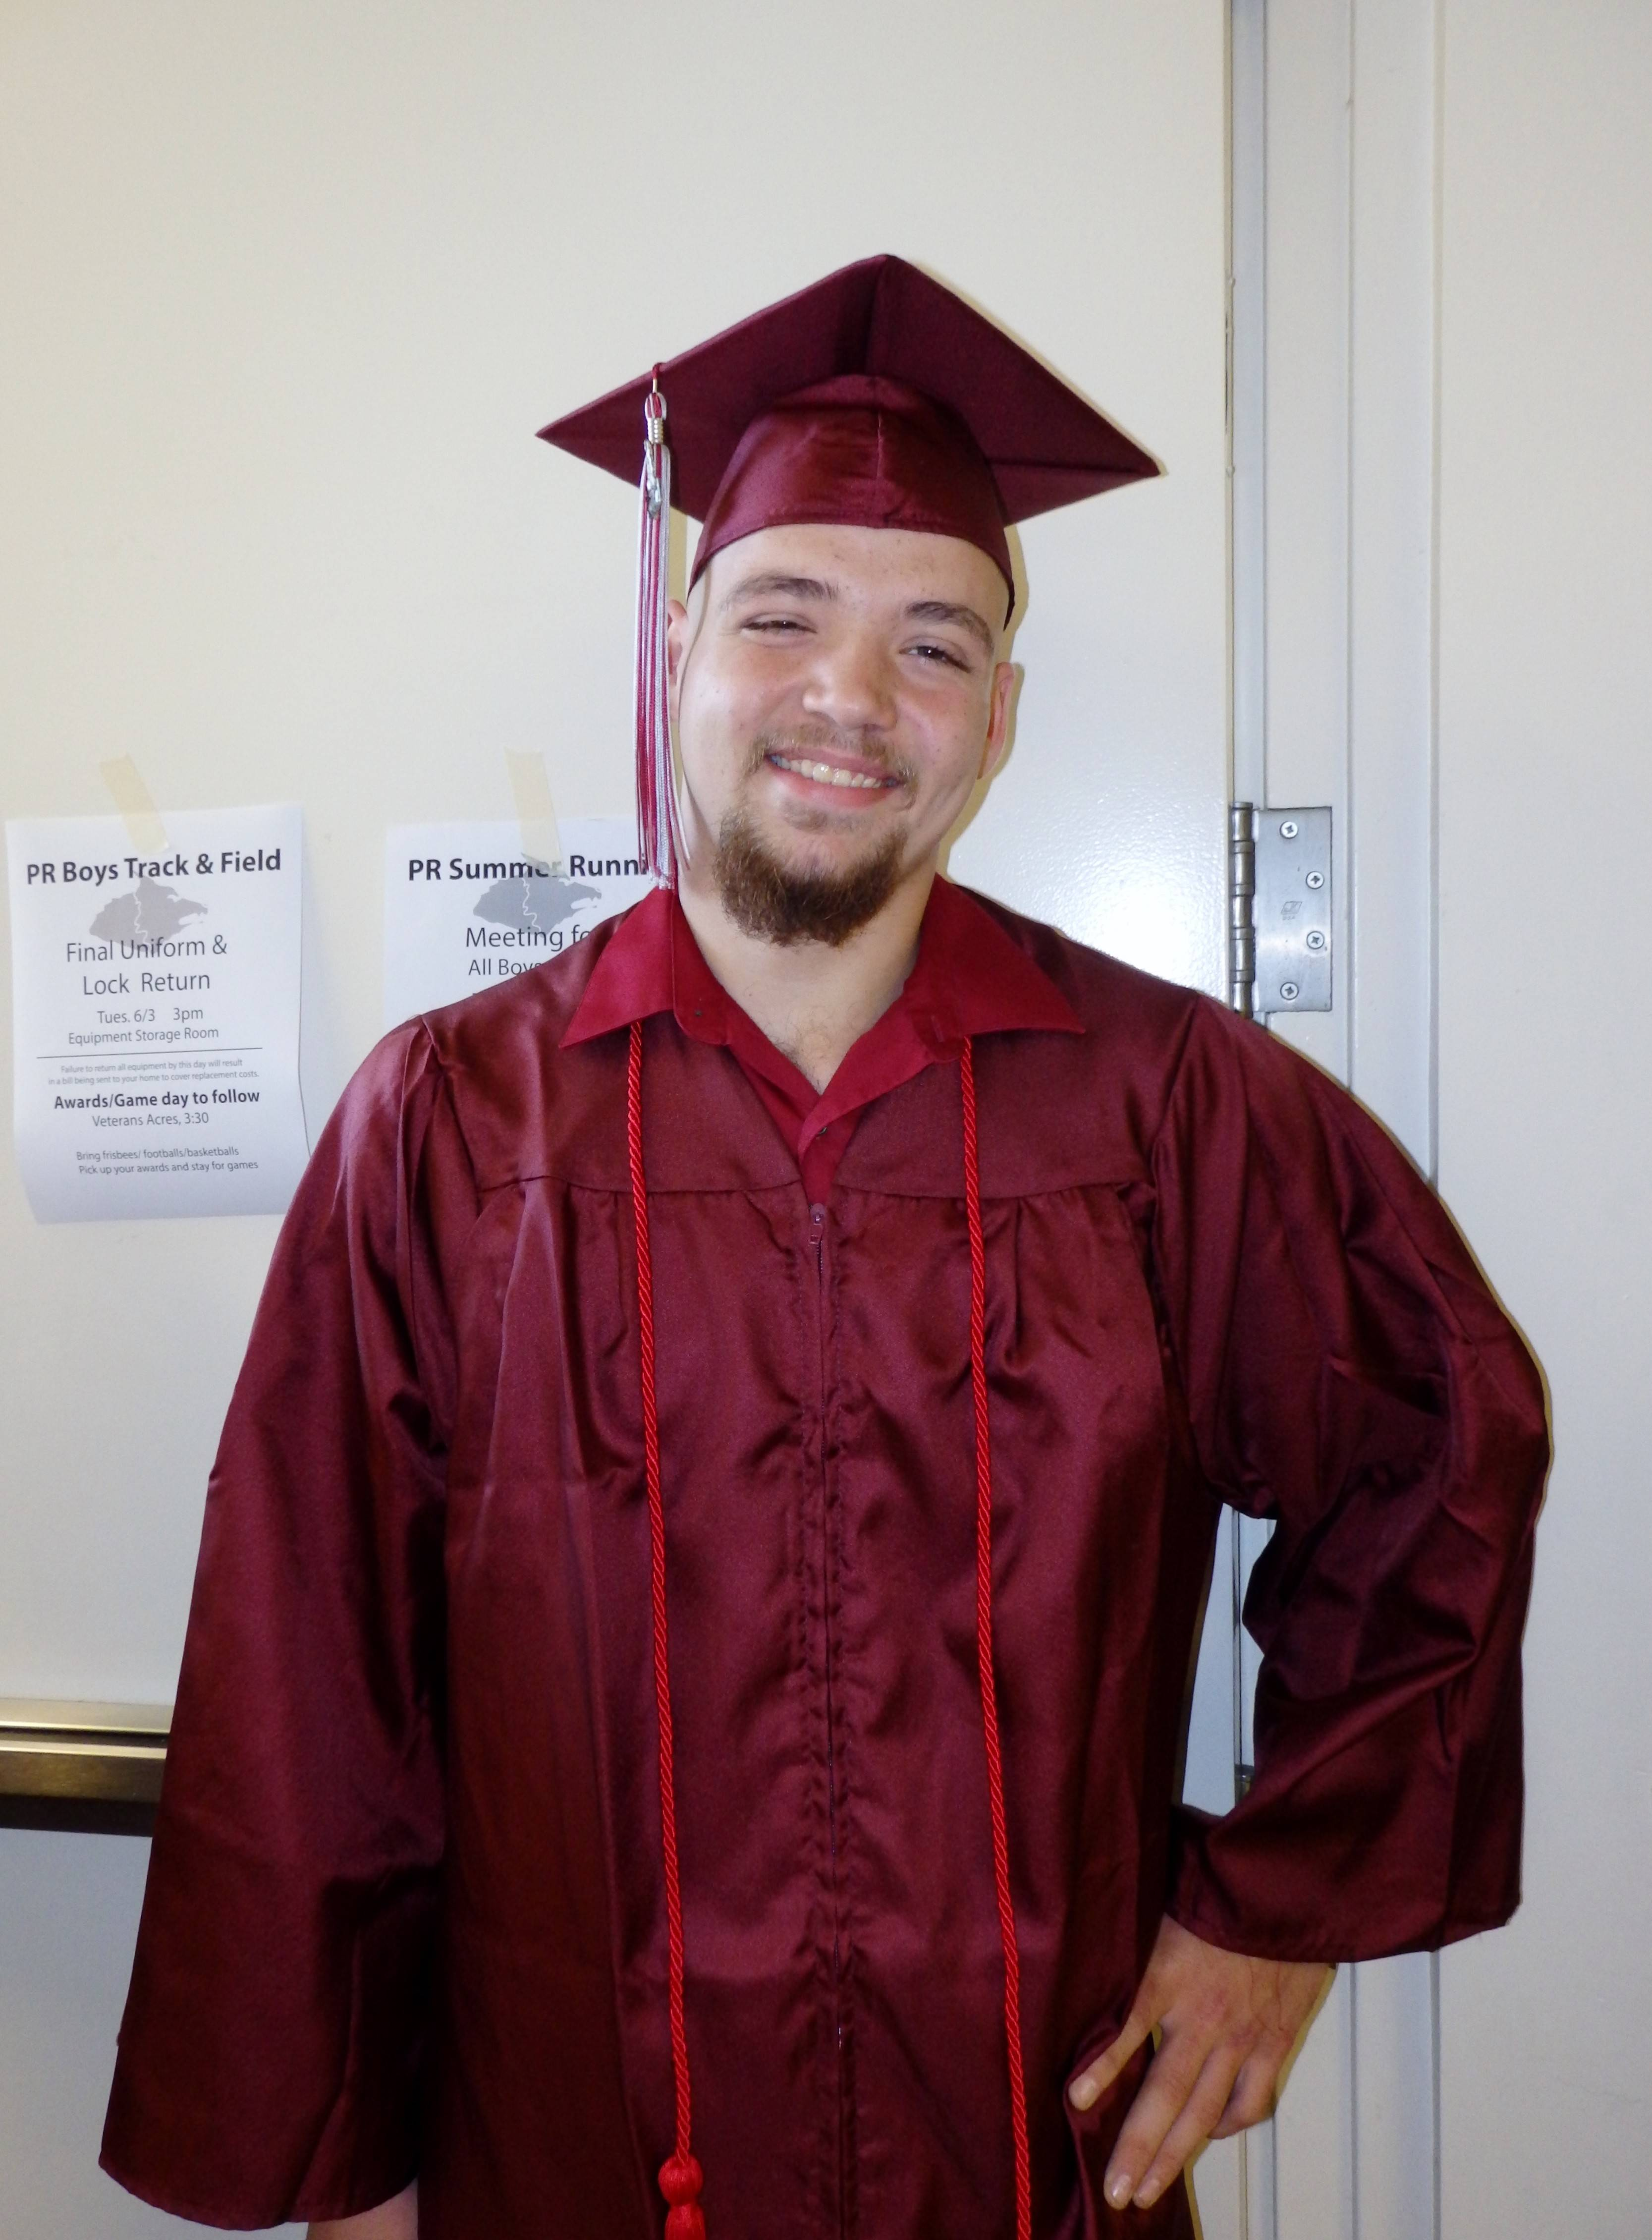 Friends of recent Prairie Ridge High School graduate P.J. Whipson, who was accepted into the highly competitive Mercedes-Benz Elite Advanced Program in Jacksonville, Florida, are raising funds on GoFundMe so he can go to school there.